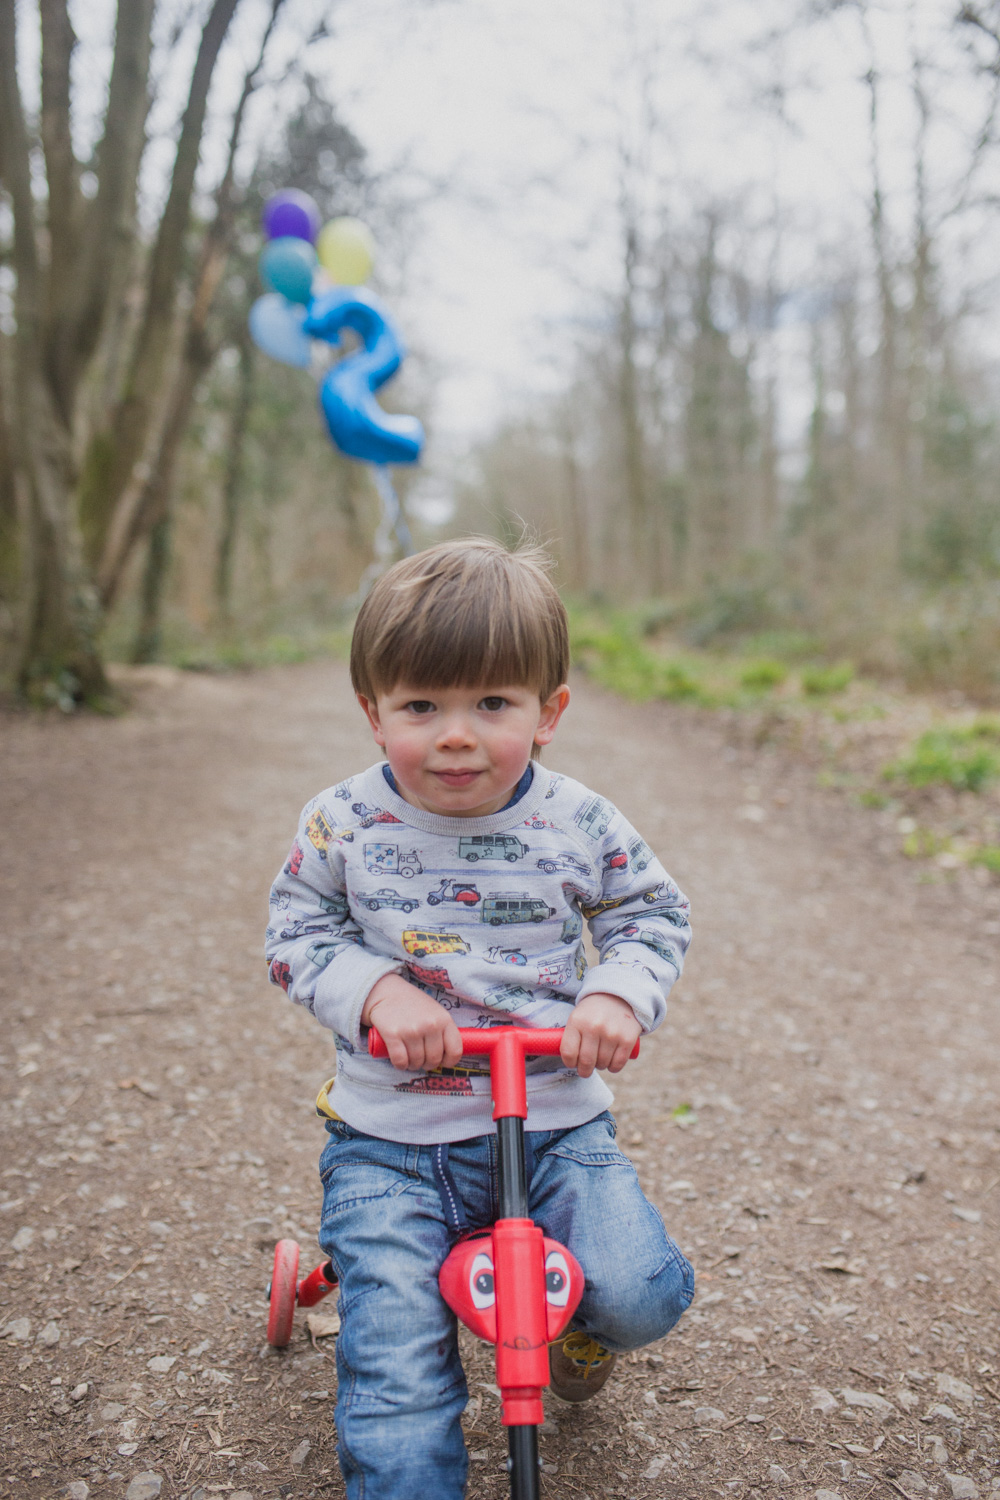 Relaxed-Bristol-Family-Photography-Leigh-Woods-26.jpg